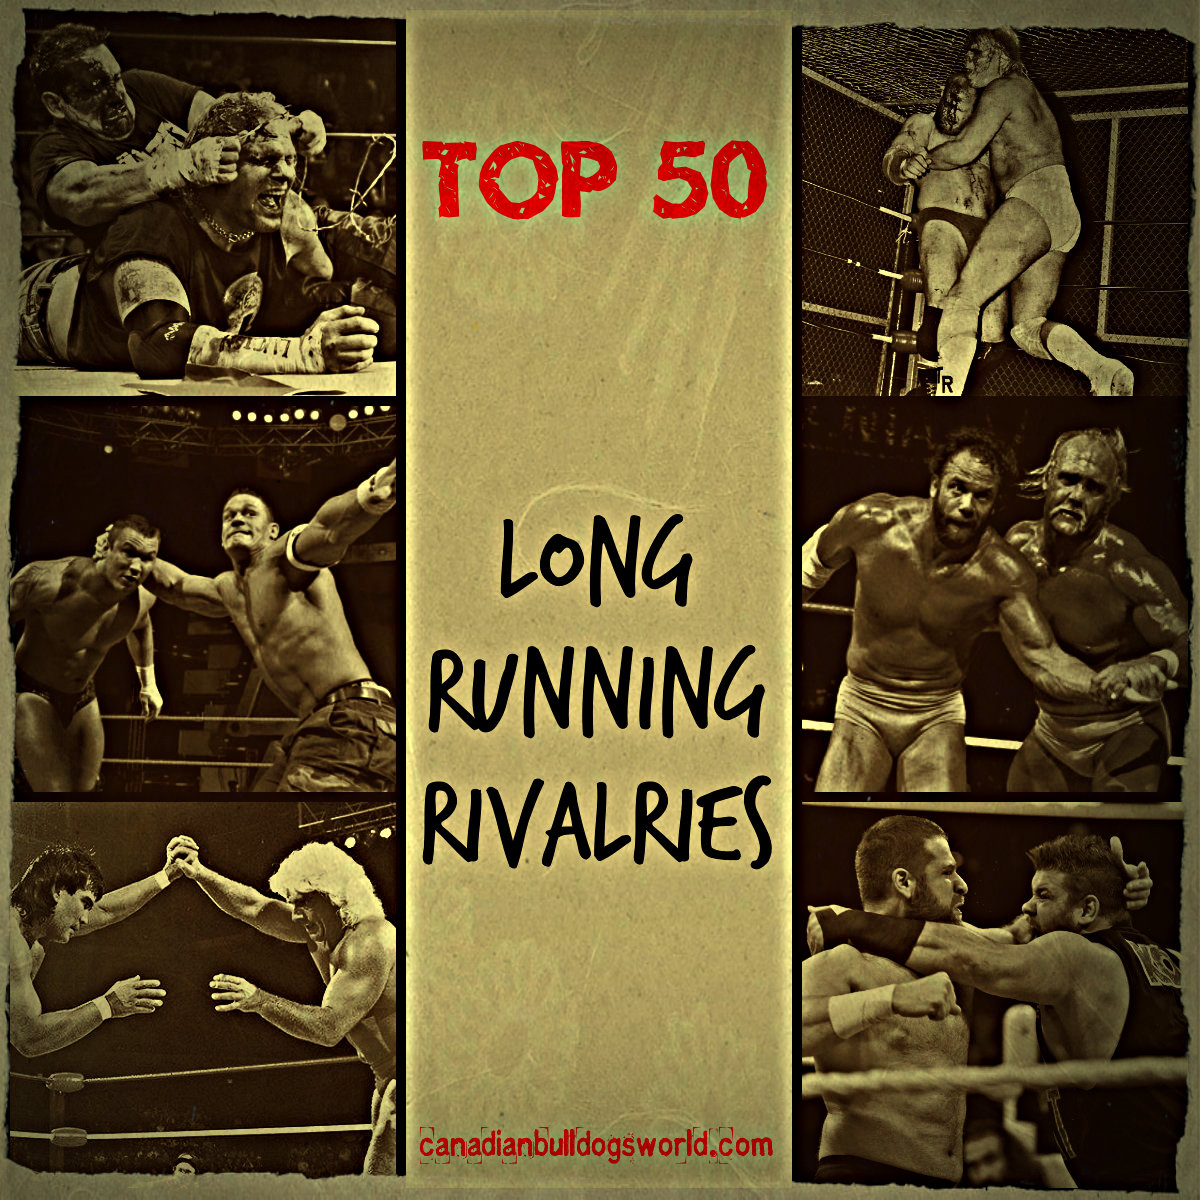 Top 50 Long Running Rivalries